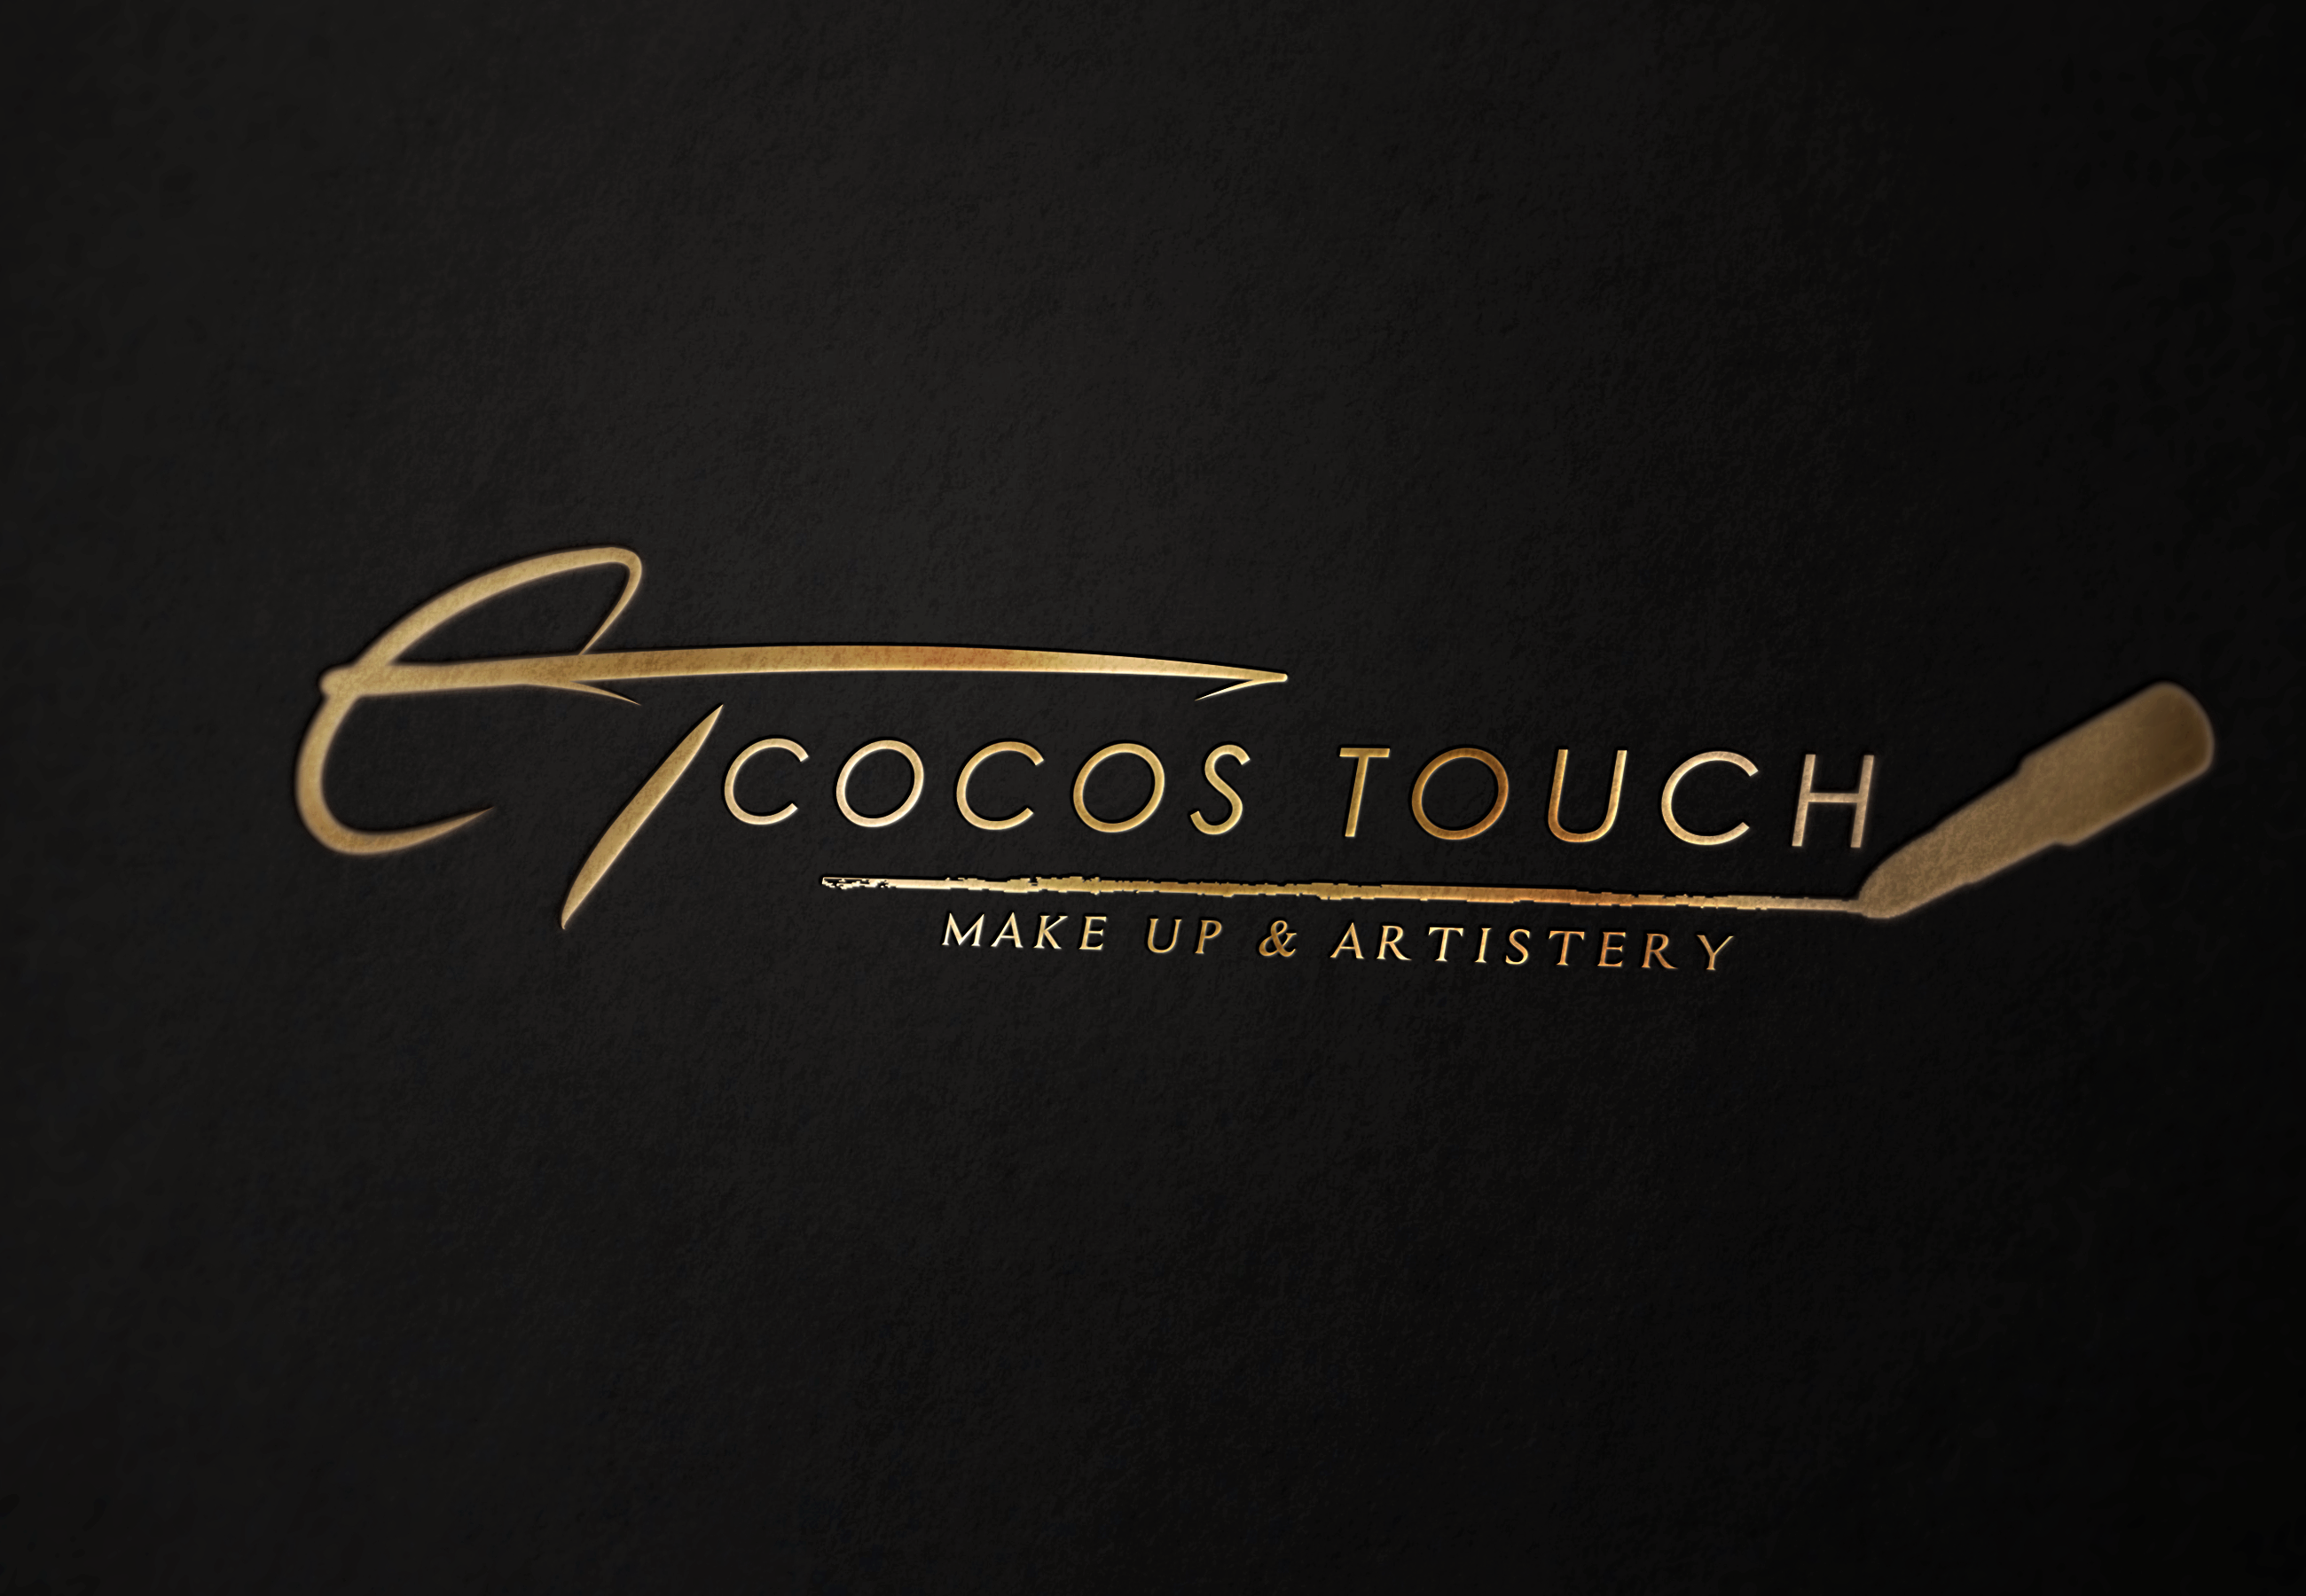 https://www.apricotcreative.co.uk/project/cocos-touch/